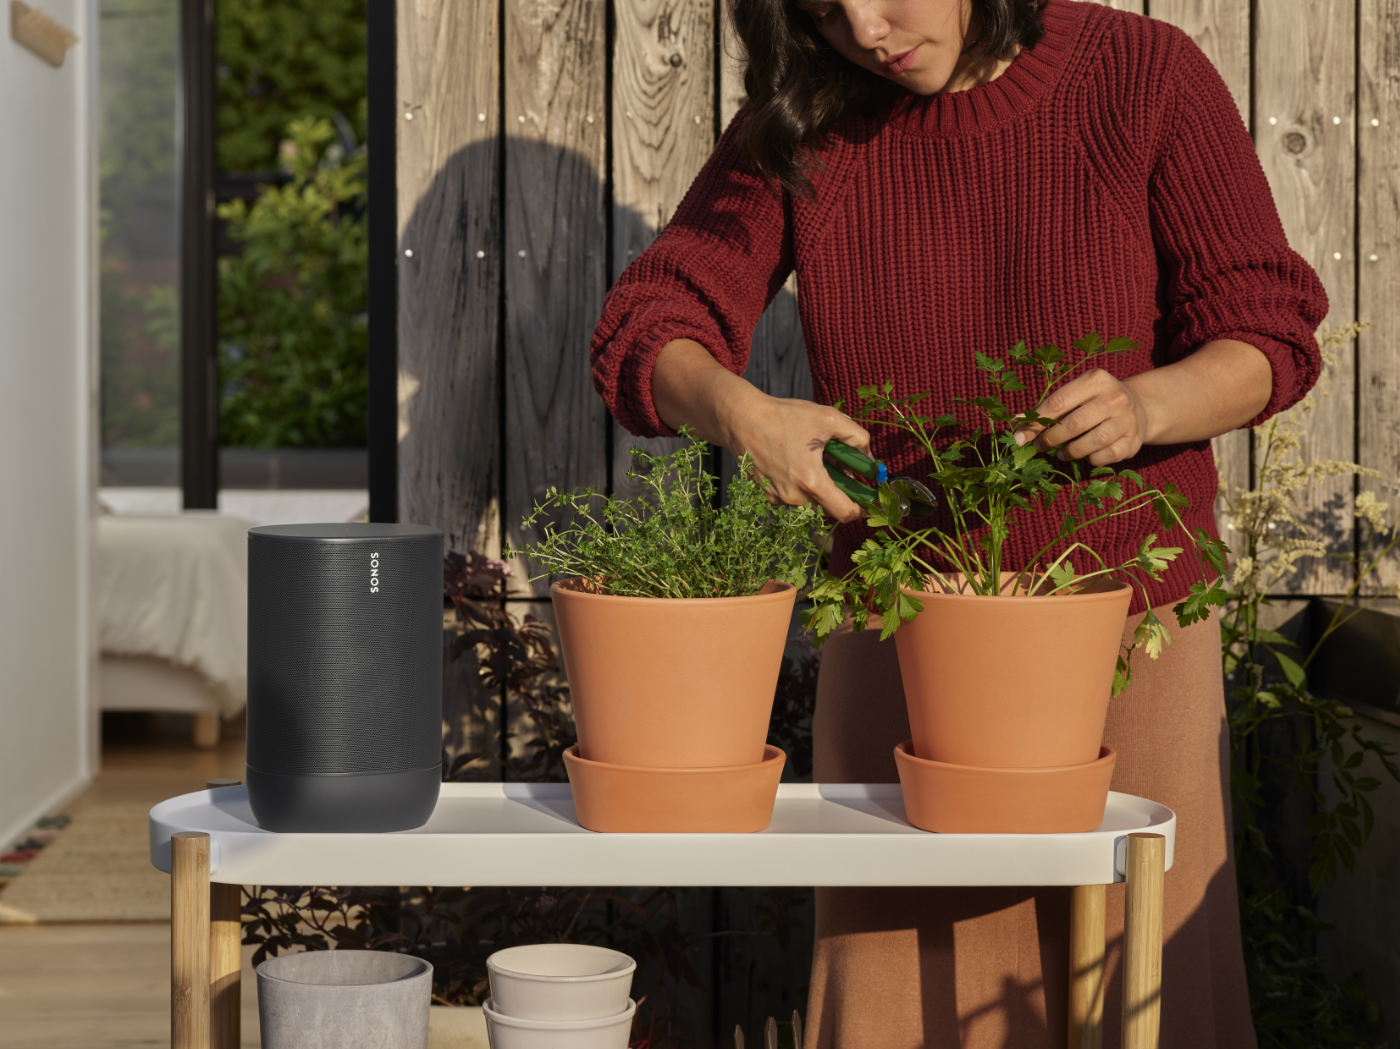 Move_Black-Lifestyle-Urban_Apartment-Outdoor_Listening-Gardening-with_Cast-Q4FY19_MST-MST_JPEG_fid42382